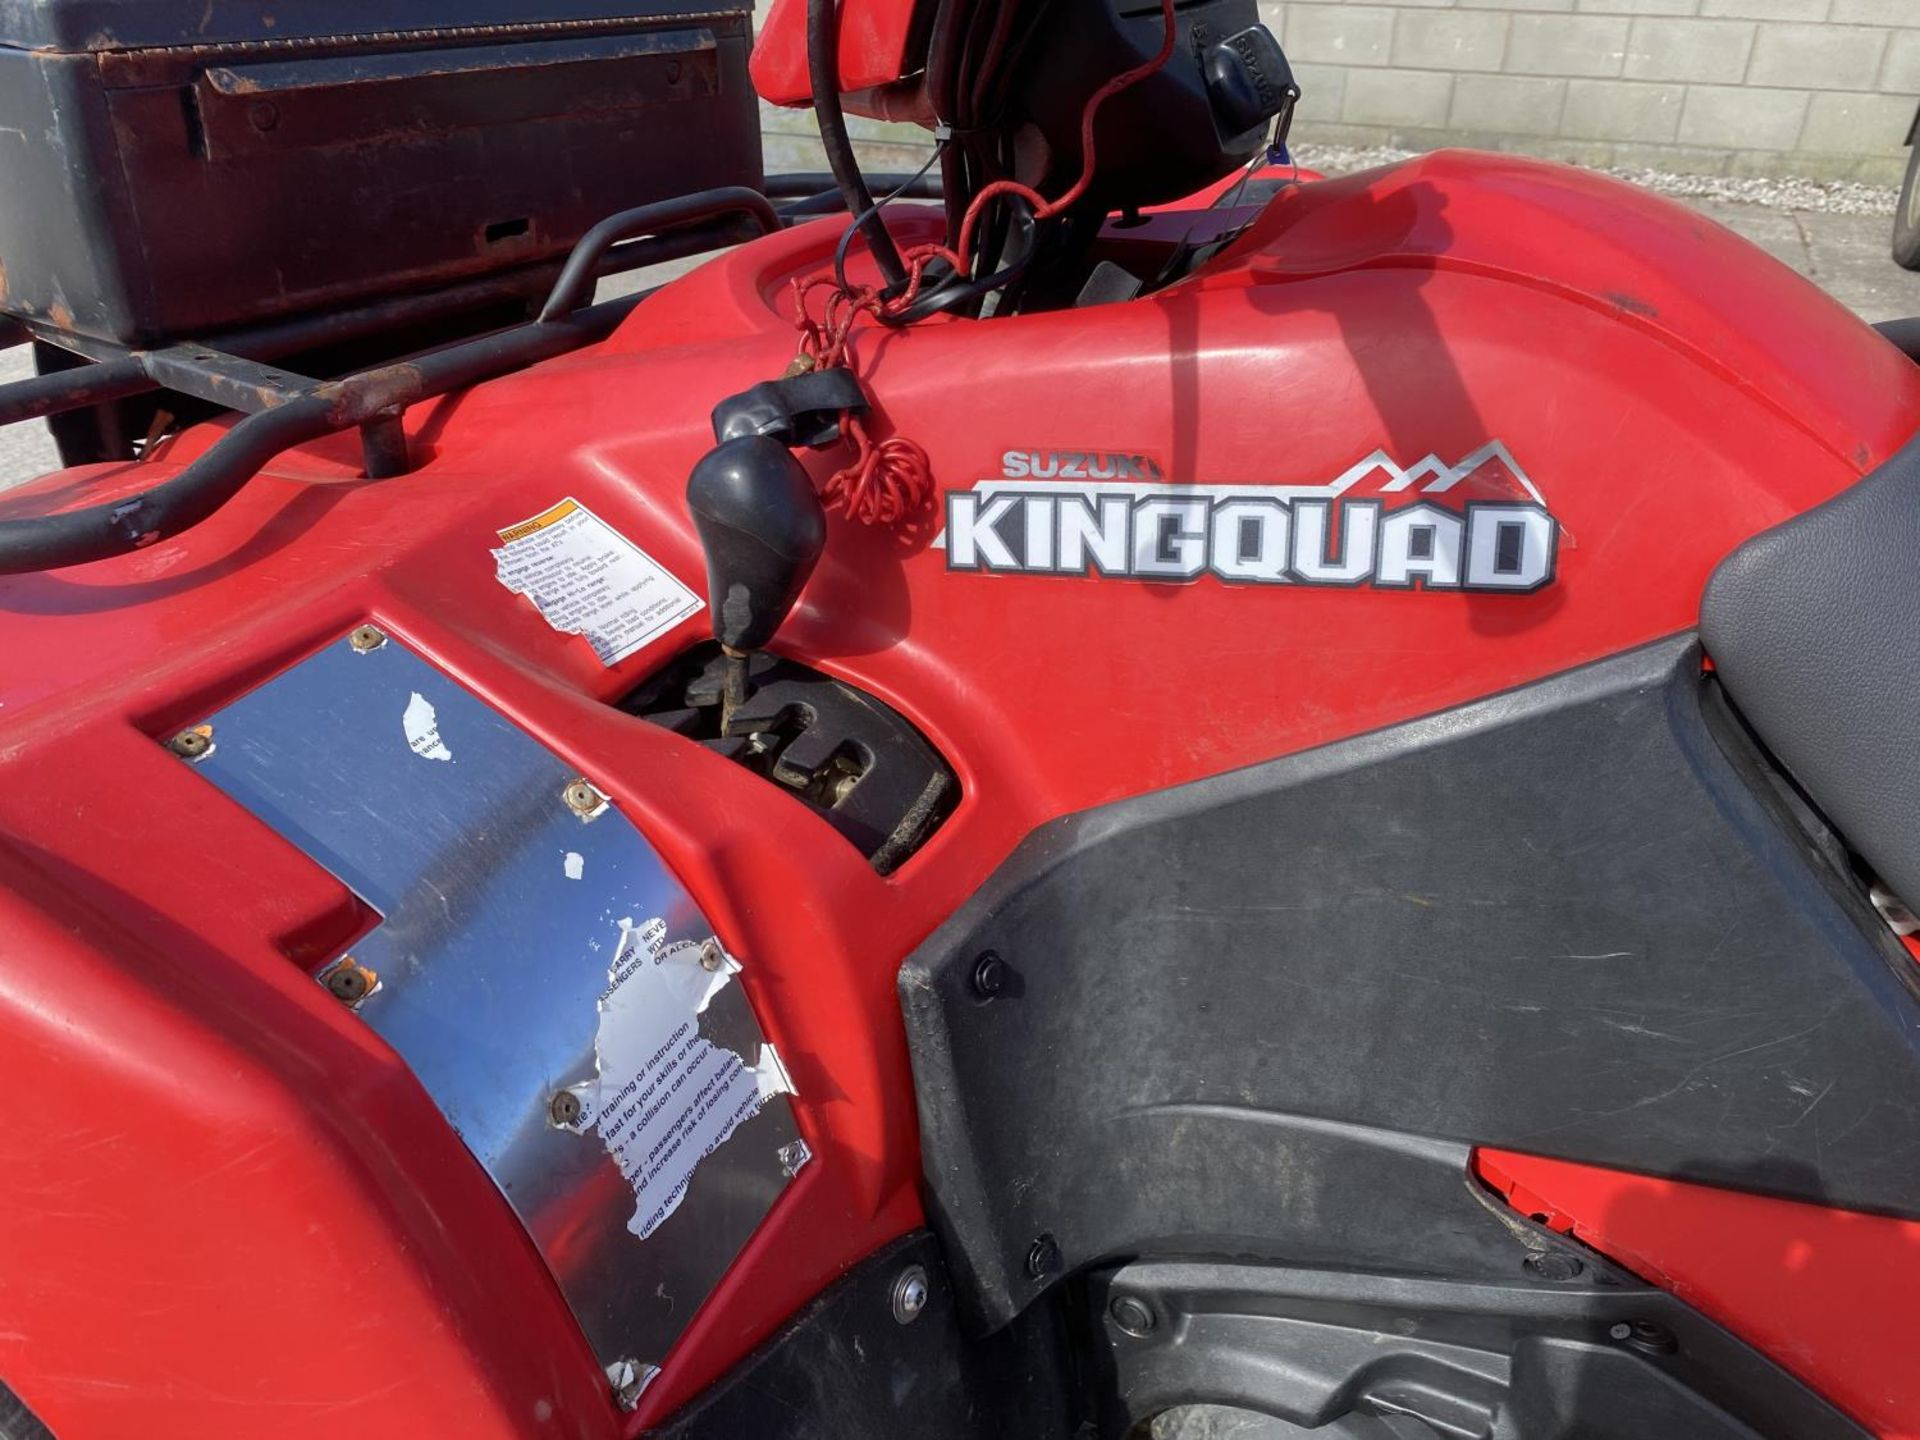 A 2014 SUZUKI KING QUAD, 500 CC WITH POWER STEERING - SEE VIDEO OF VEHICLE STARTING AND RUNNING AT - Image 2 of 9